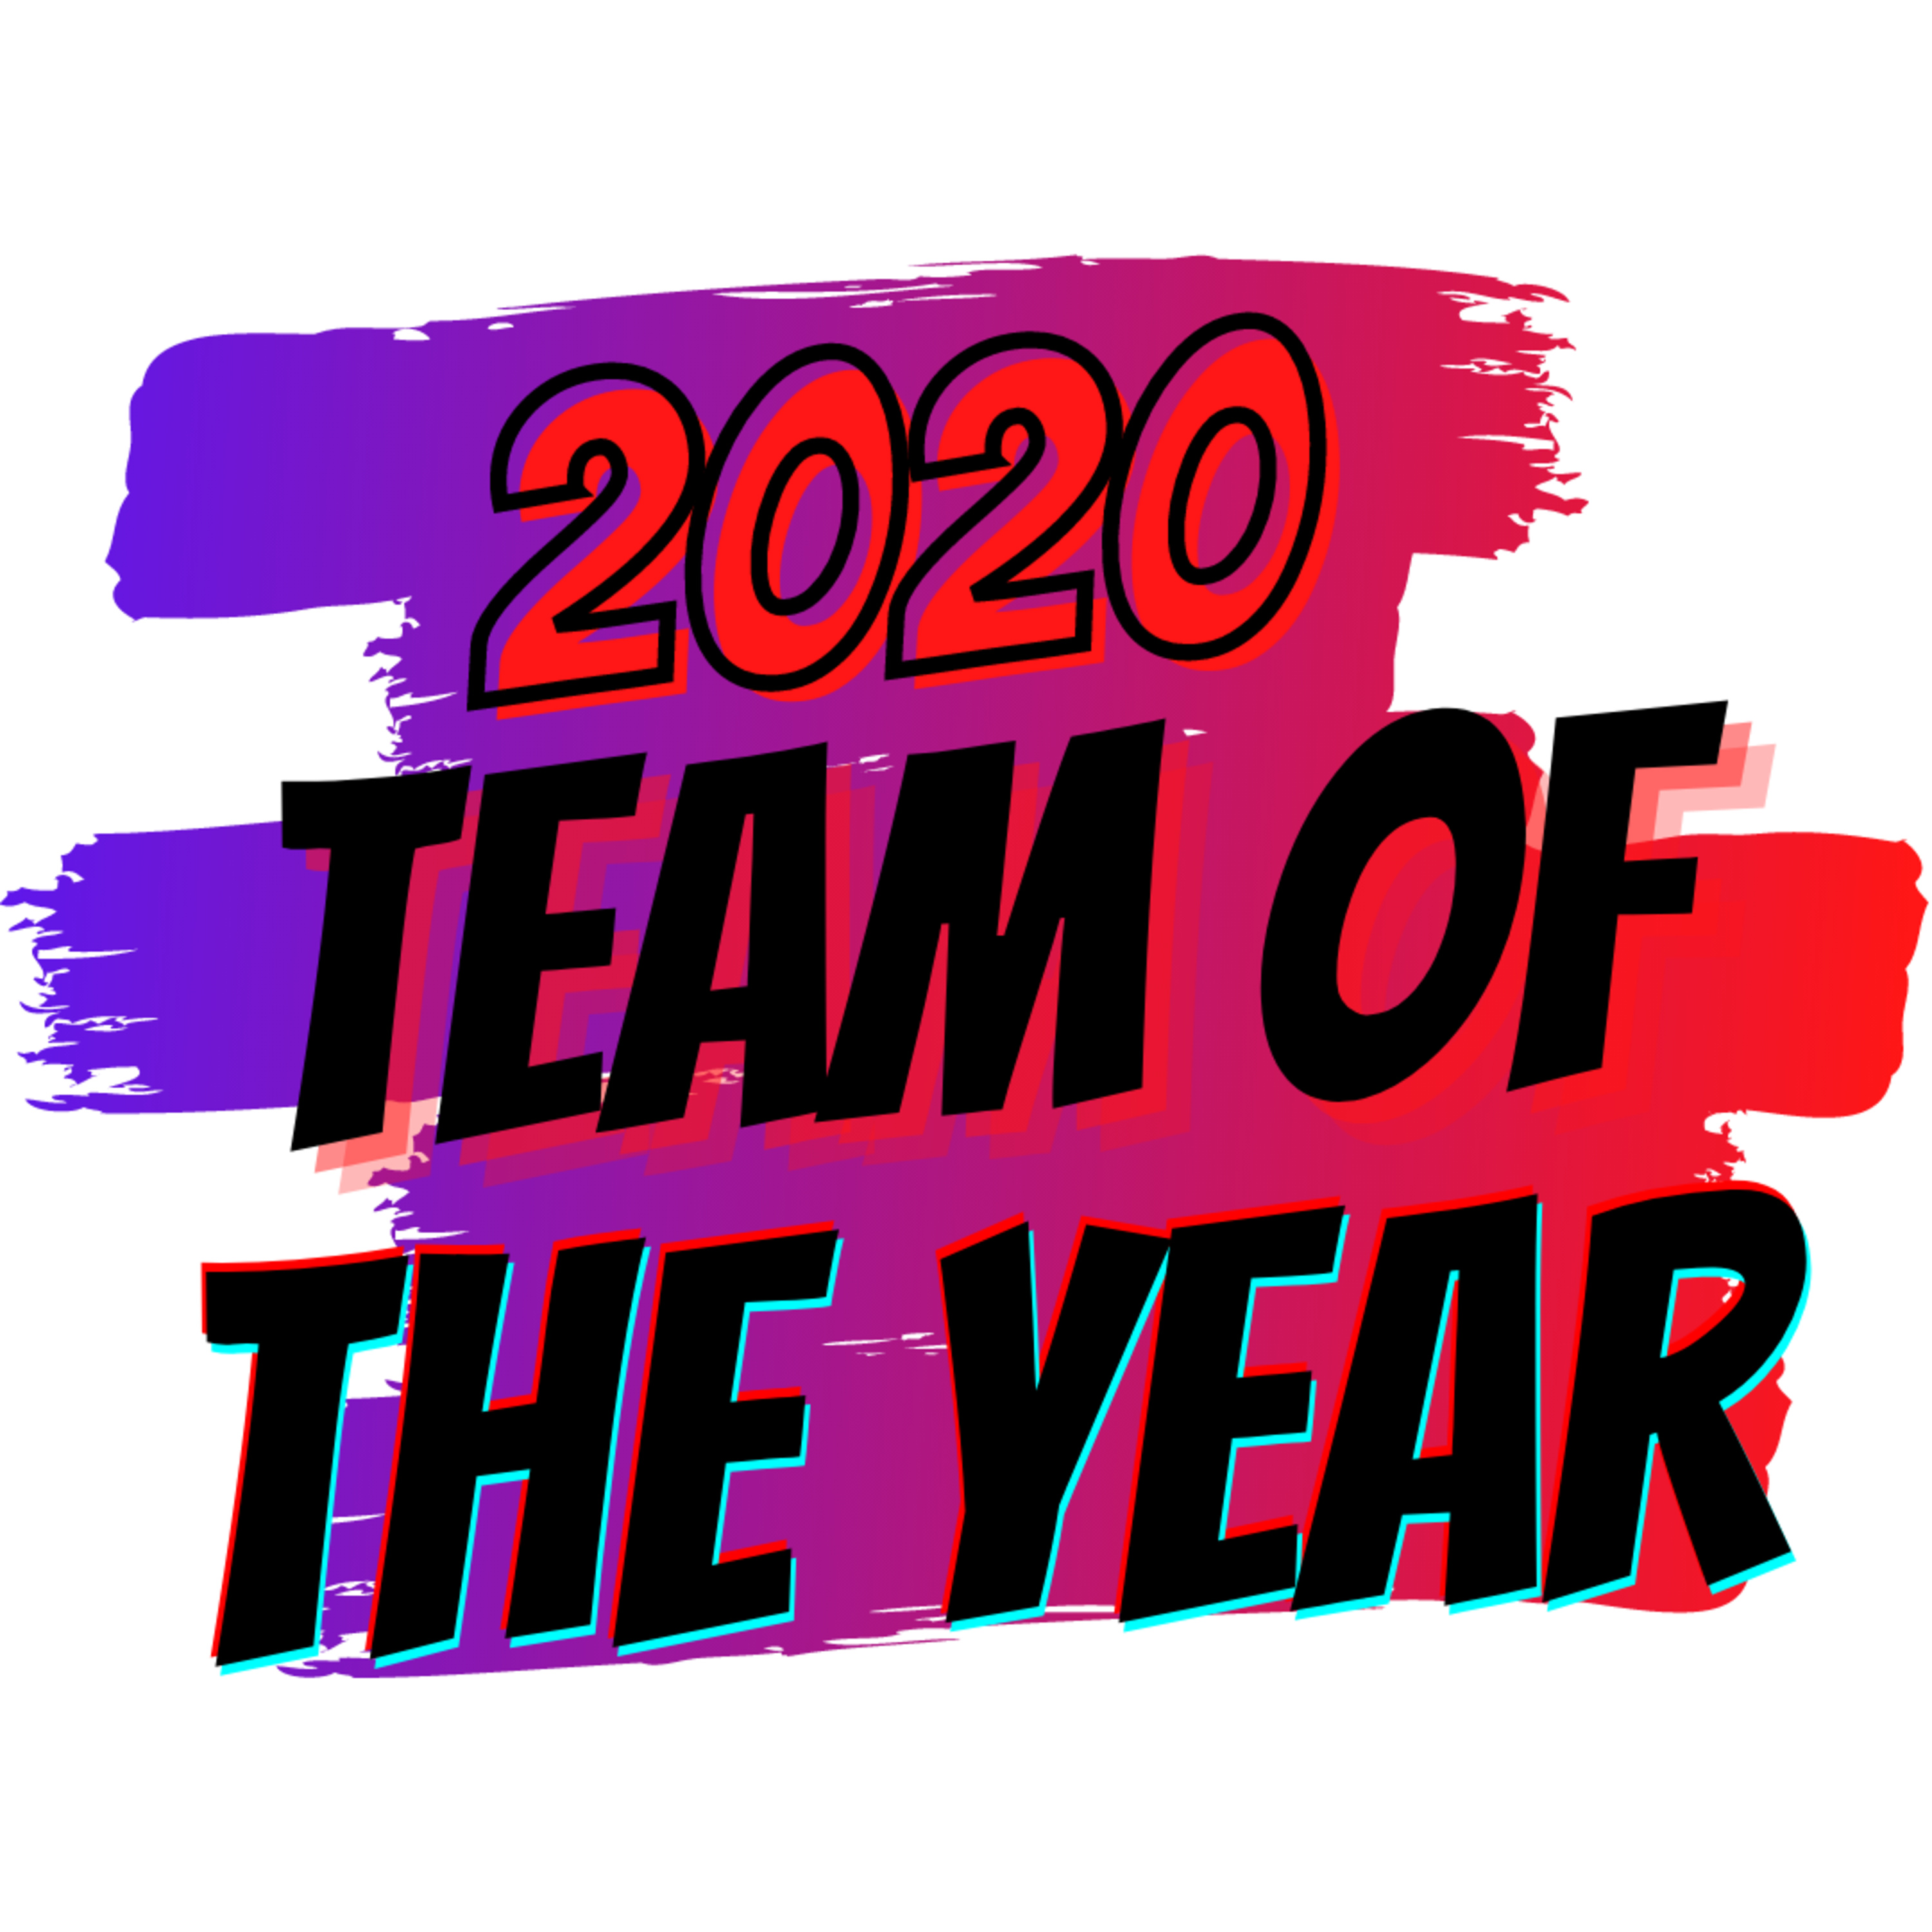 2020 Team of the Year